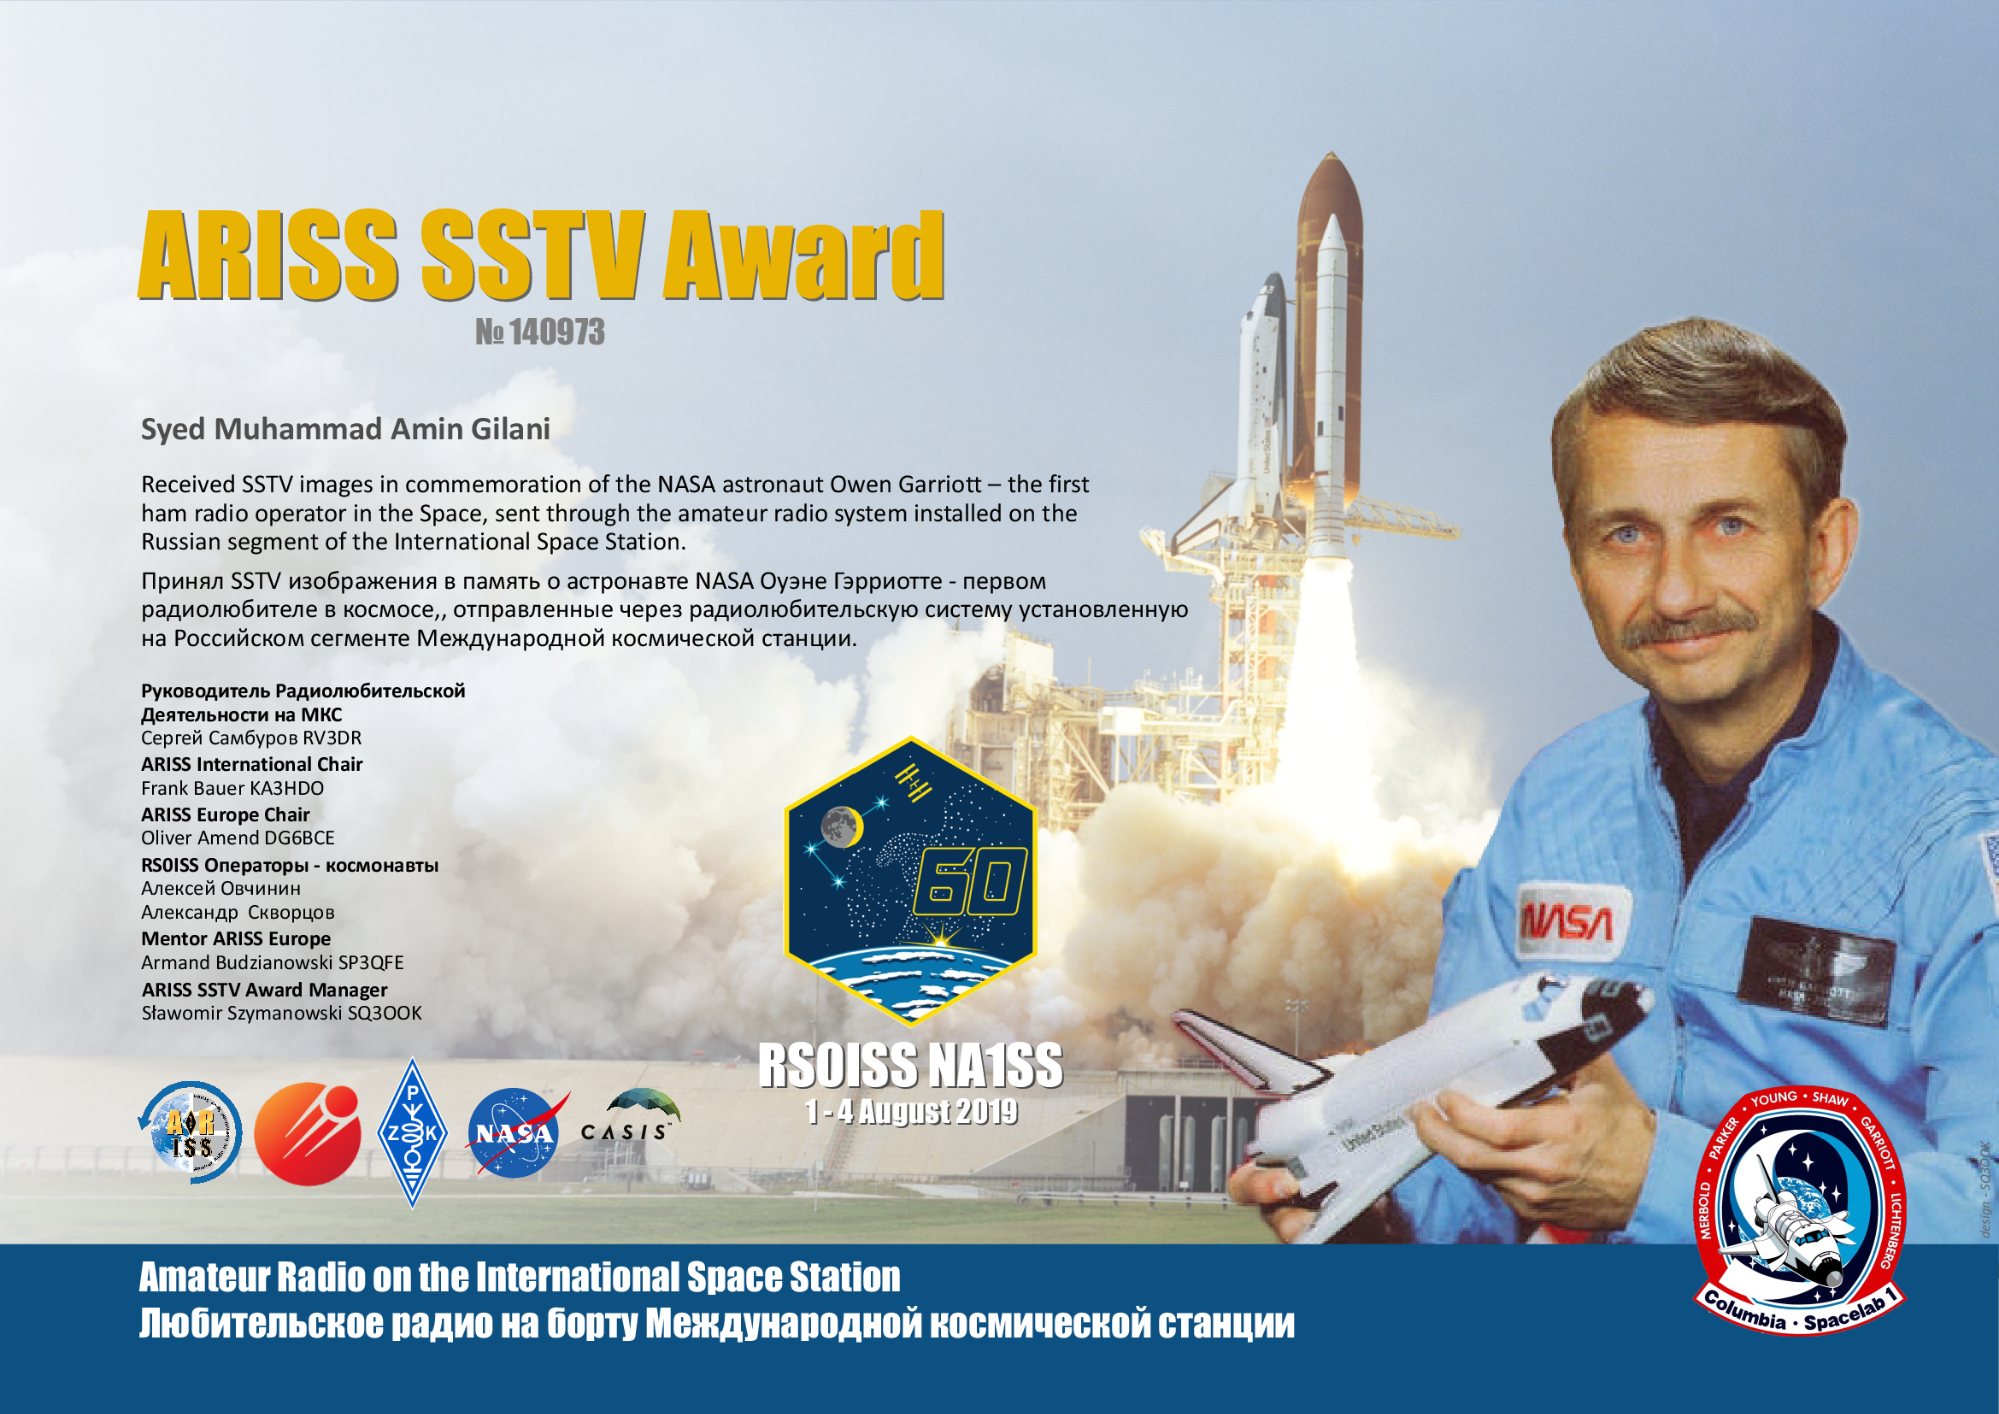 ARISS SSTV Award published to Syed Muhammad Amin Gilani